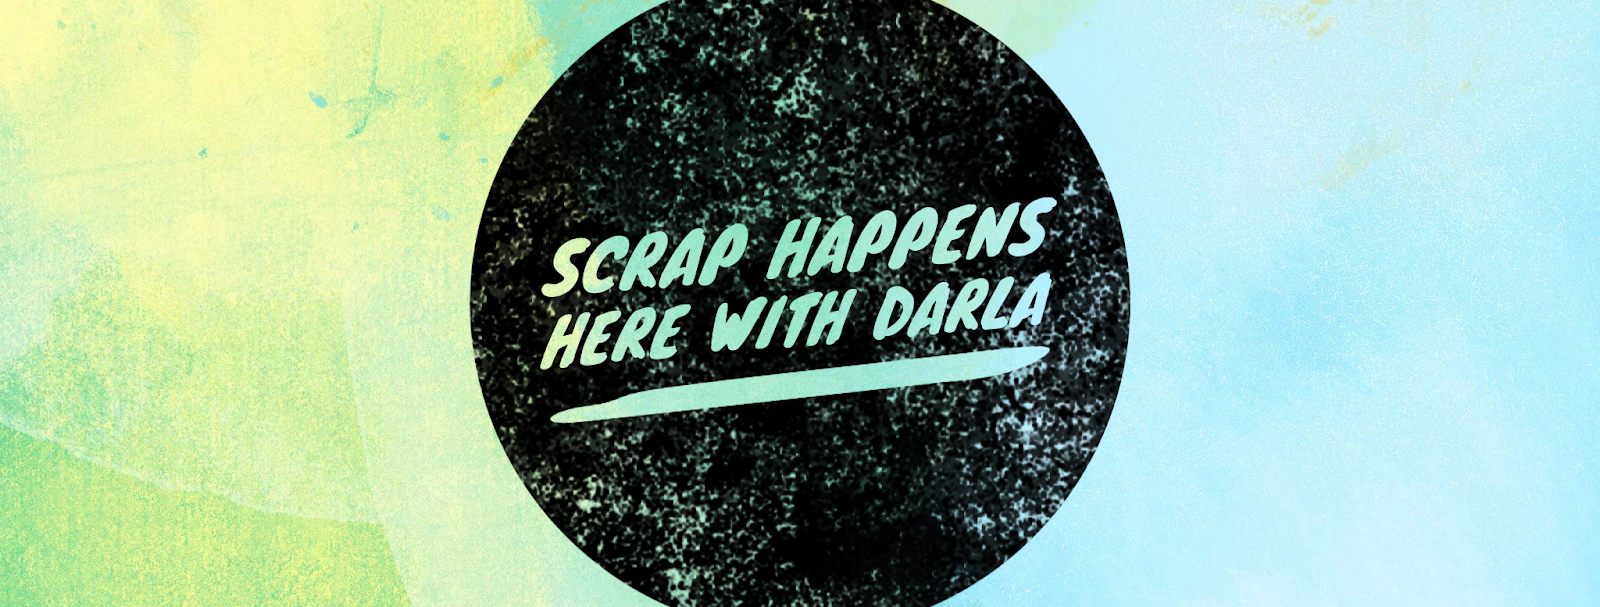 Scrap Happens Here with Darla